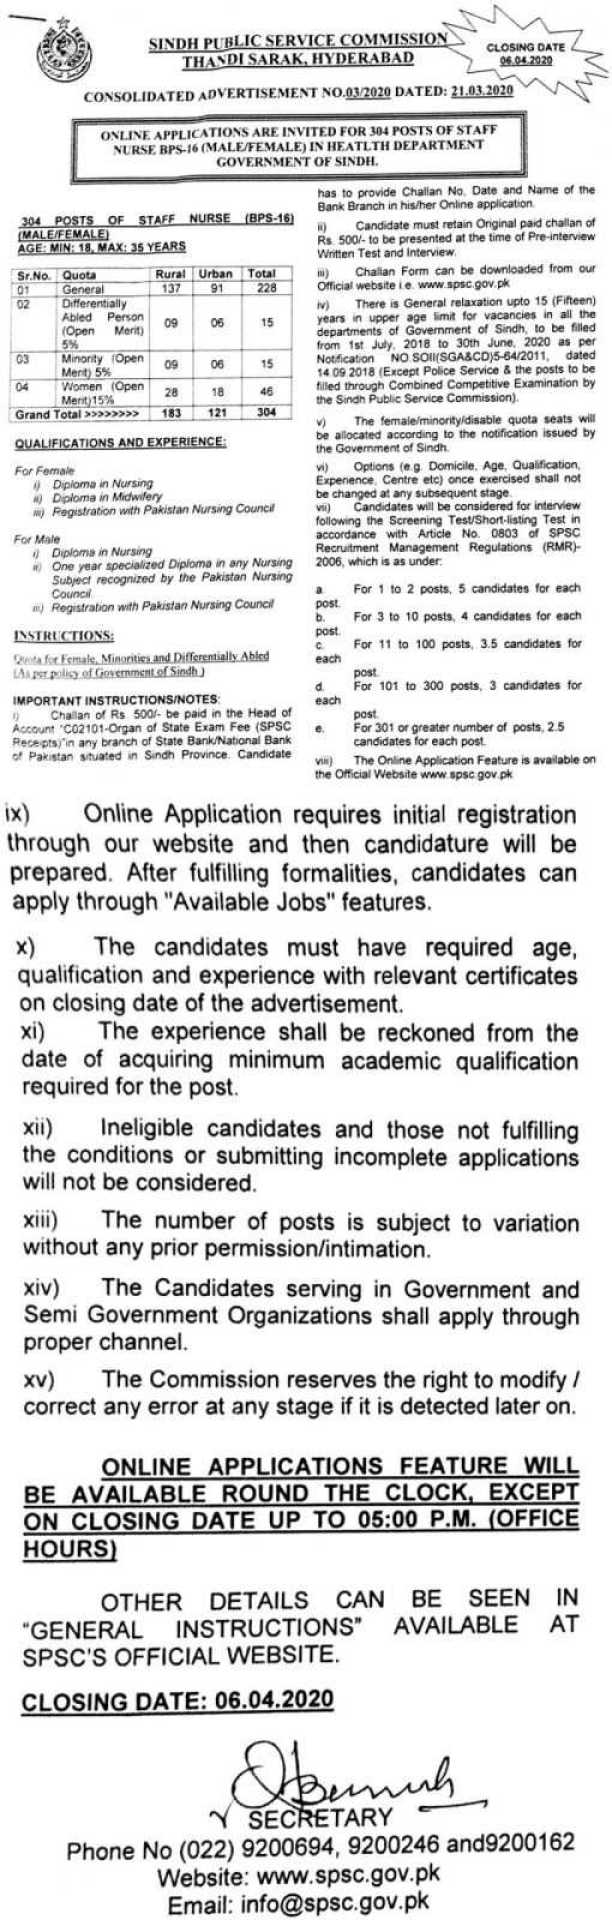 Jobs in Health Department Government of Sindh 2020 Apply Now